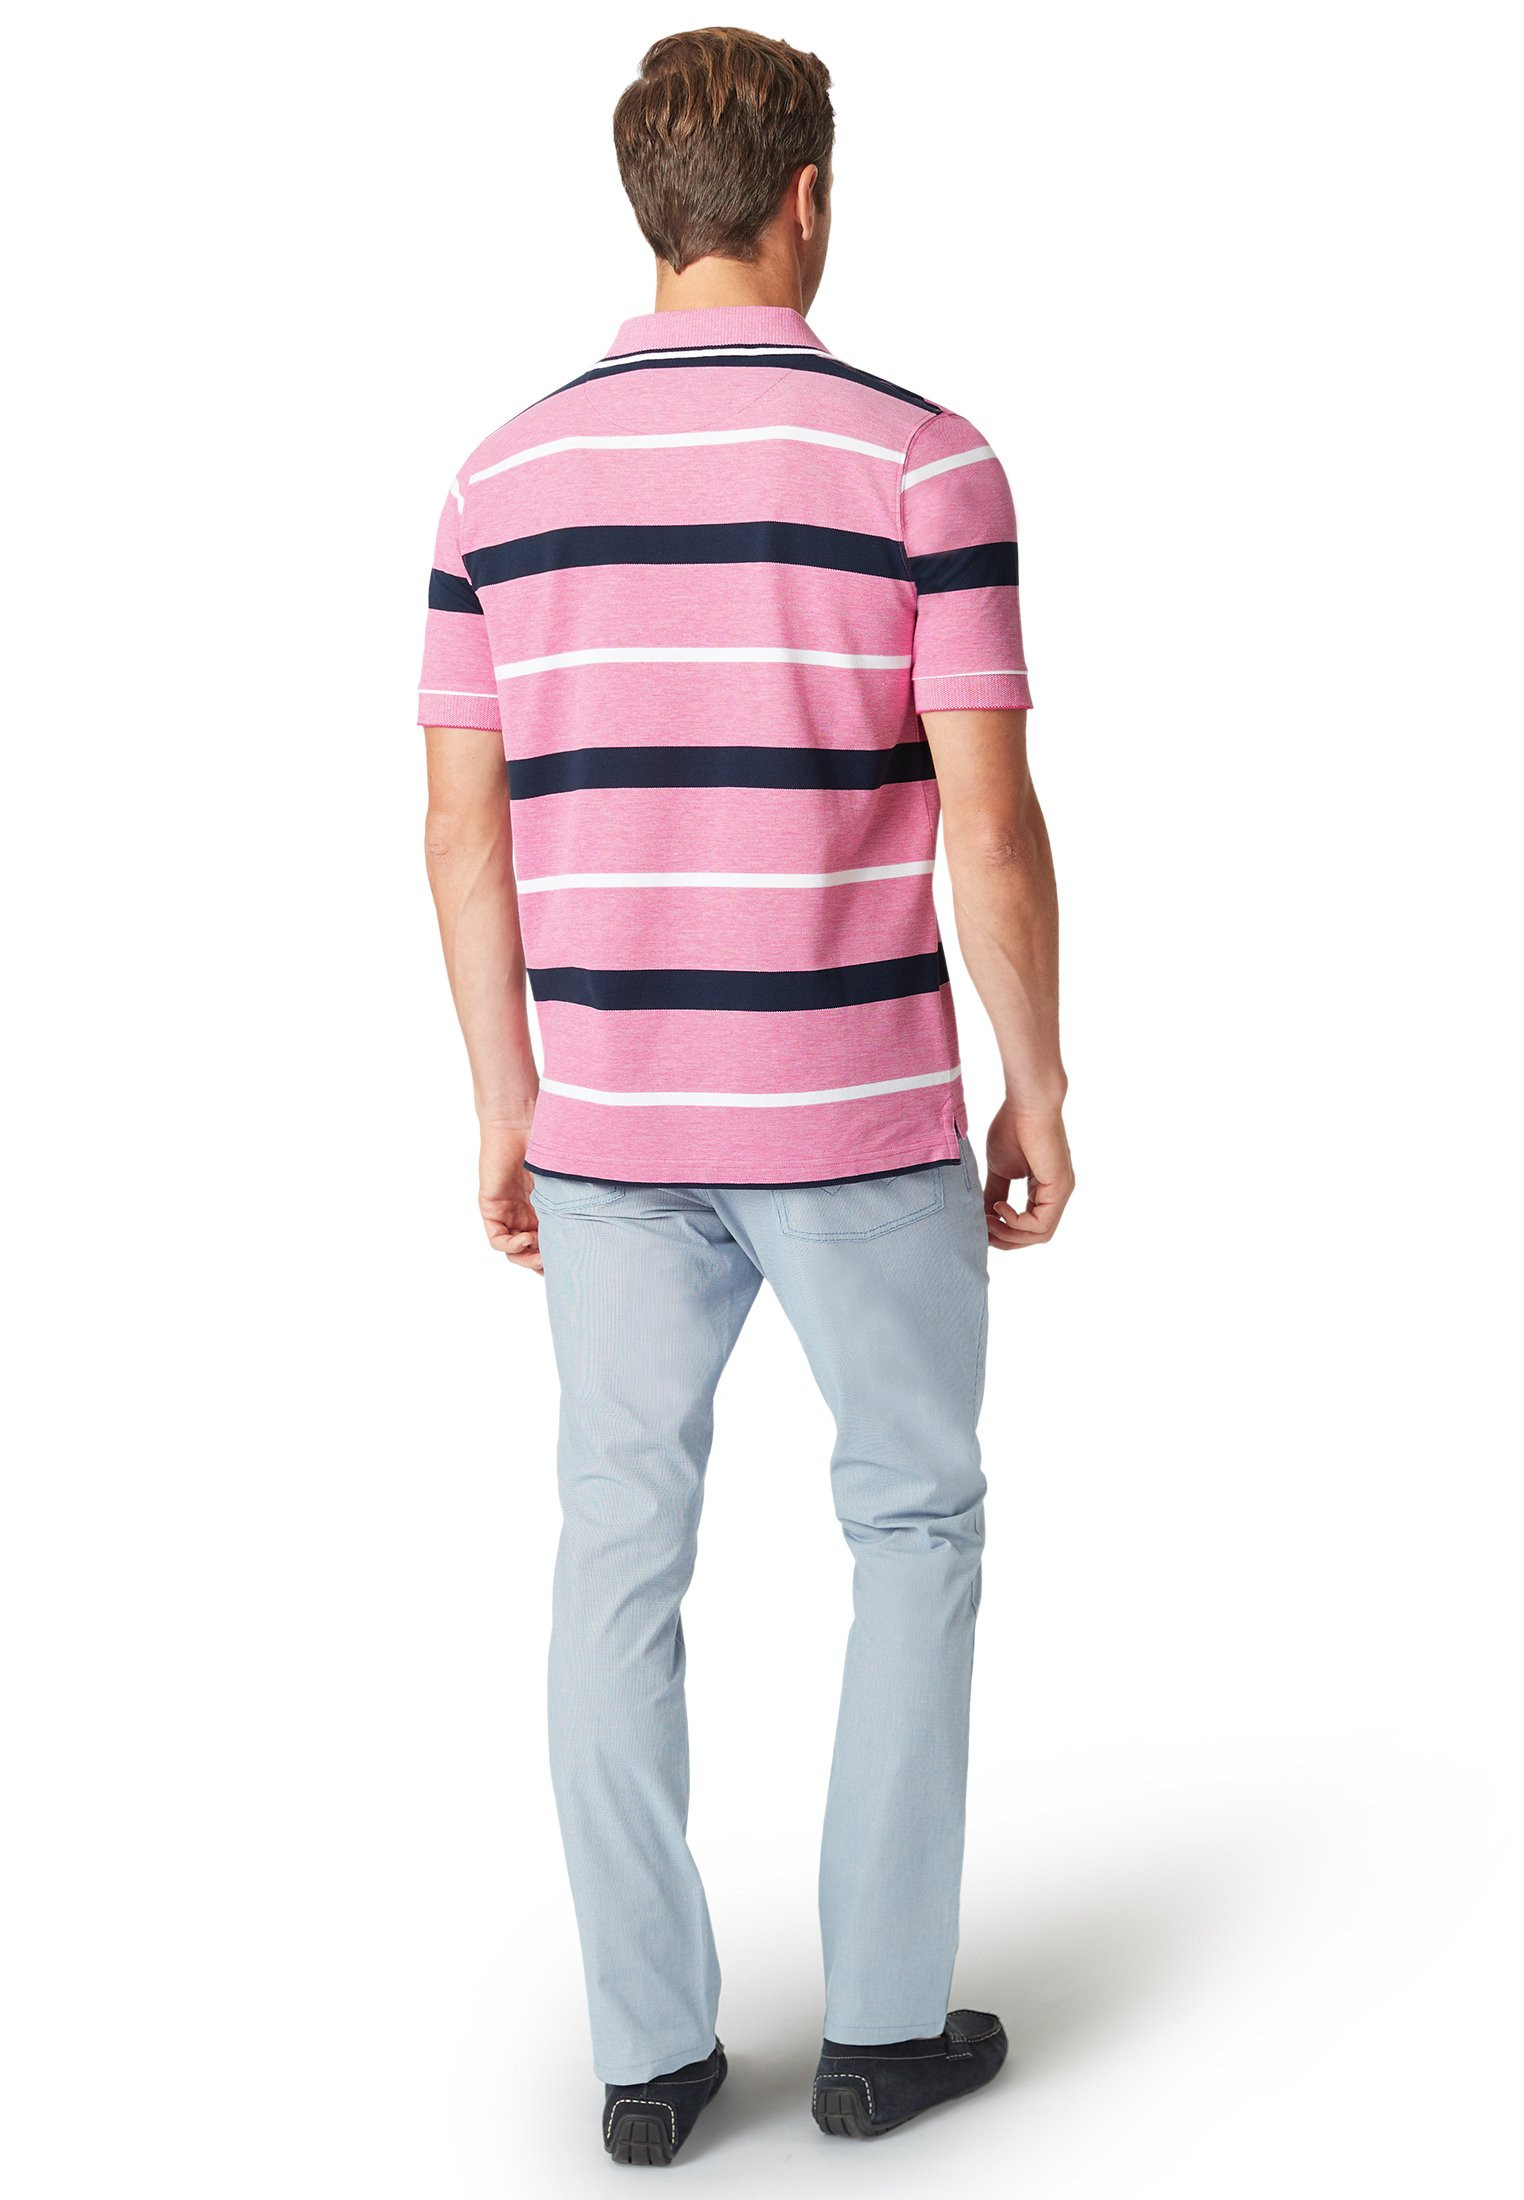 Devizes Raspberry with Navy and White Hoop Soft Handle Piqué Polo Shirt